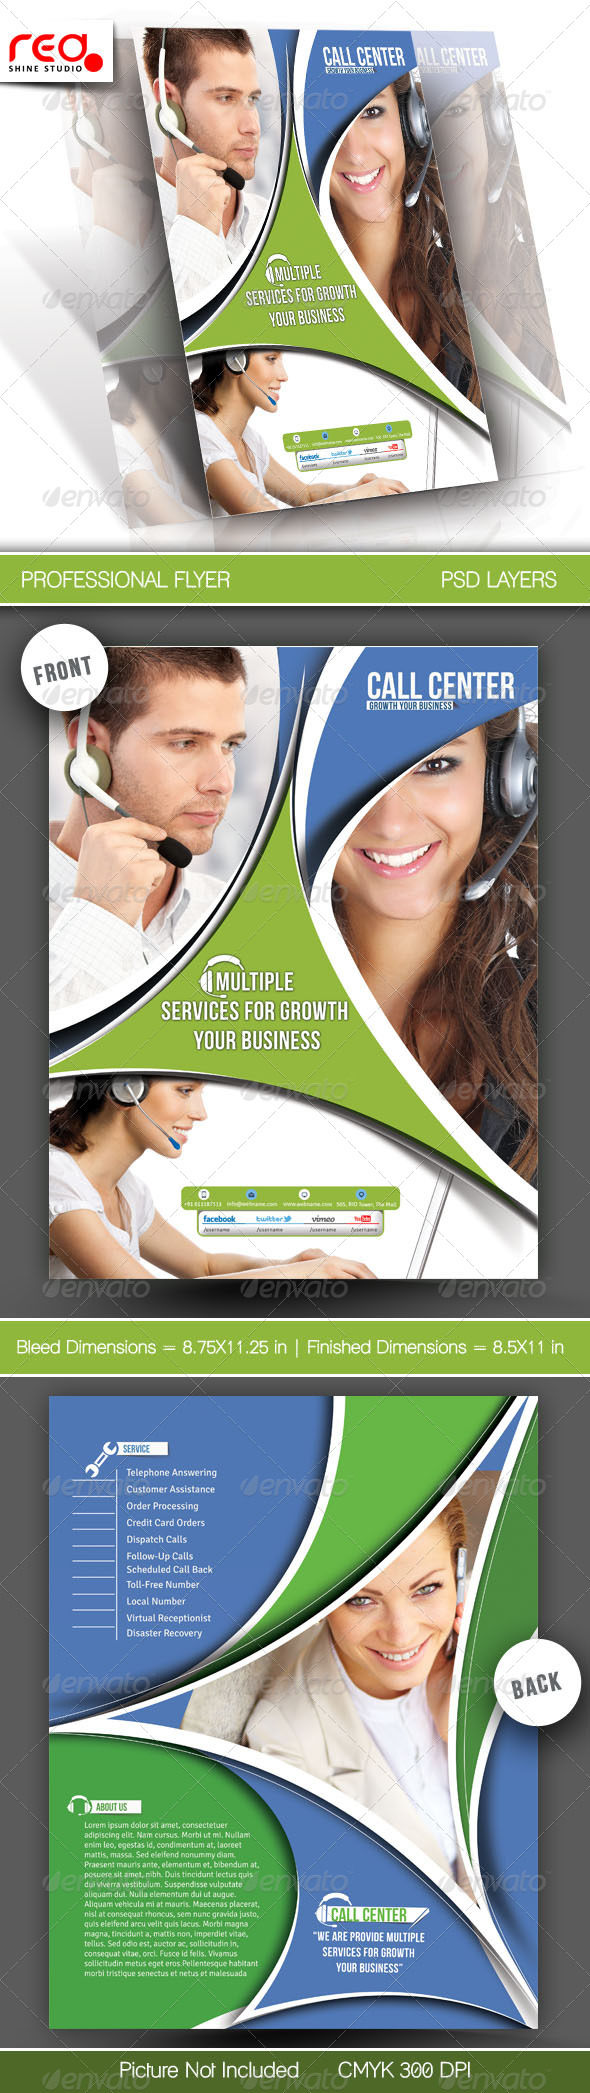 Customer Support Flyer & Poster Template - 2 - Corporate Flyers